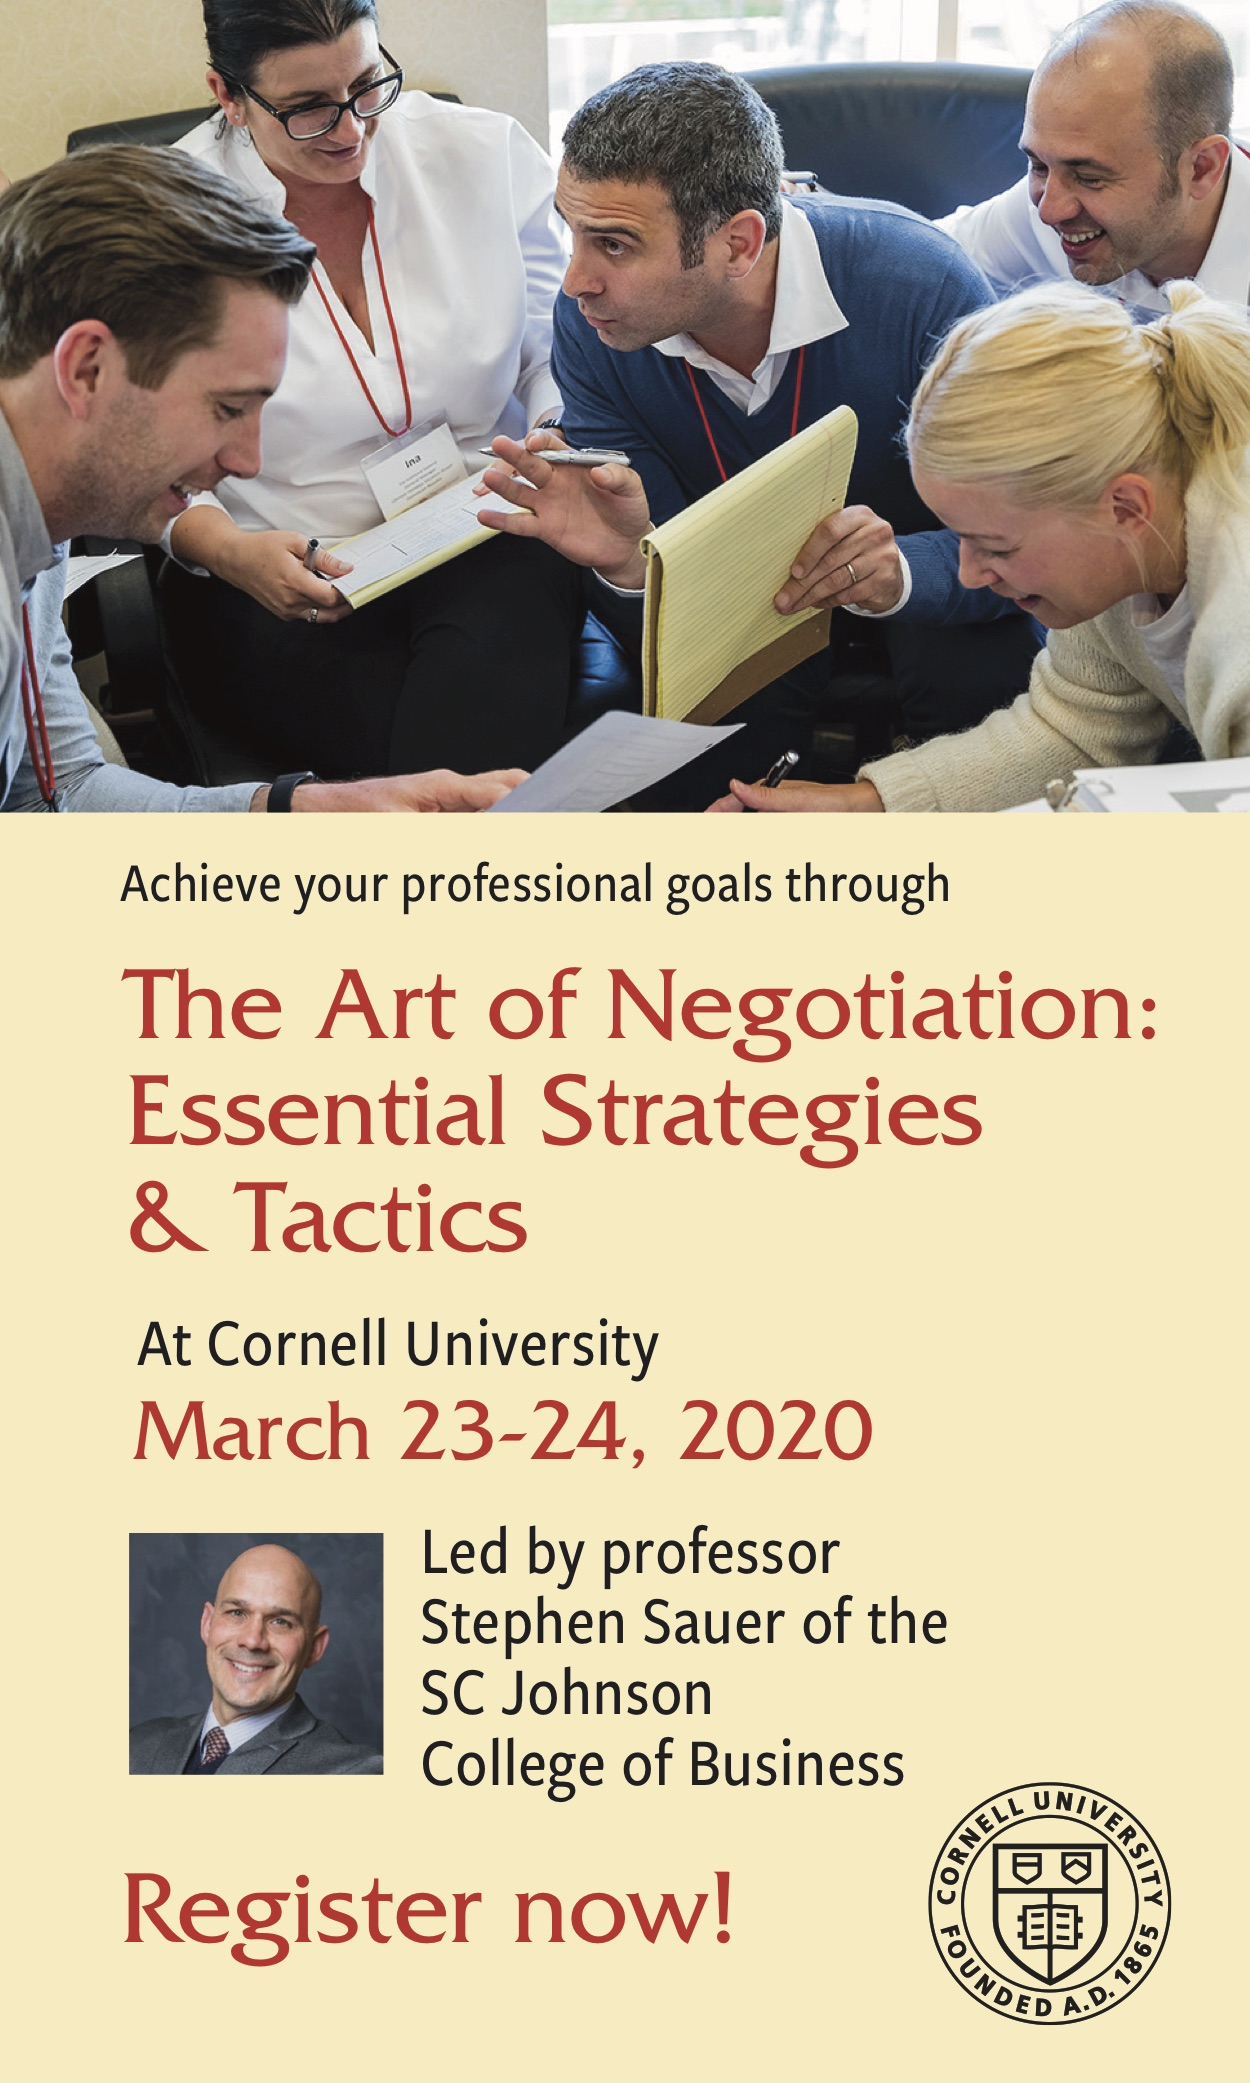 The Art of Negotiation weekend seminar ad